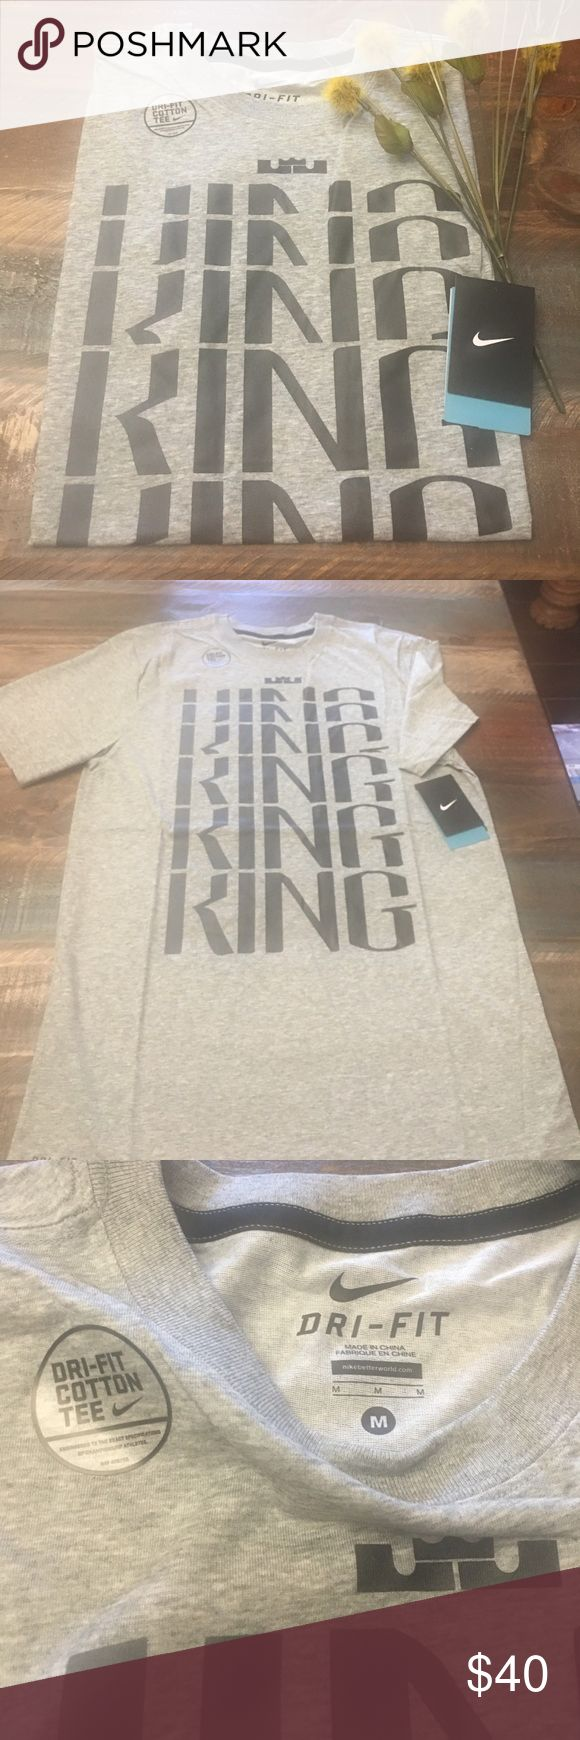 🛍🎉🛍 NWT Lebron James NIKE TEE Brand new Nike Dri-Fit Cotton Tee FIRM ON PRICE! already reduced 🎁🎊 Nike Shirts Tees - Short Sleeve